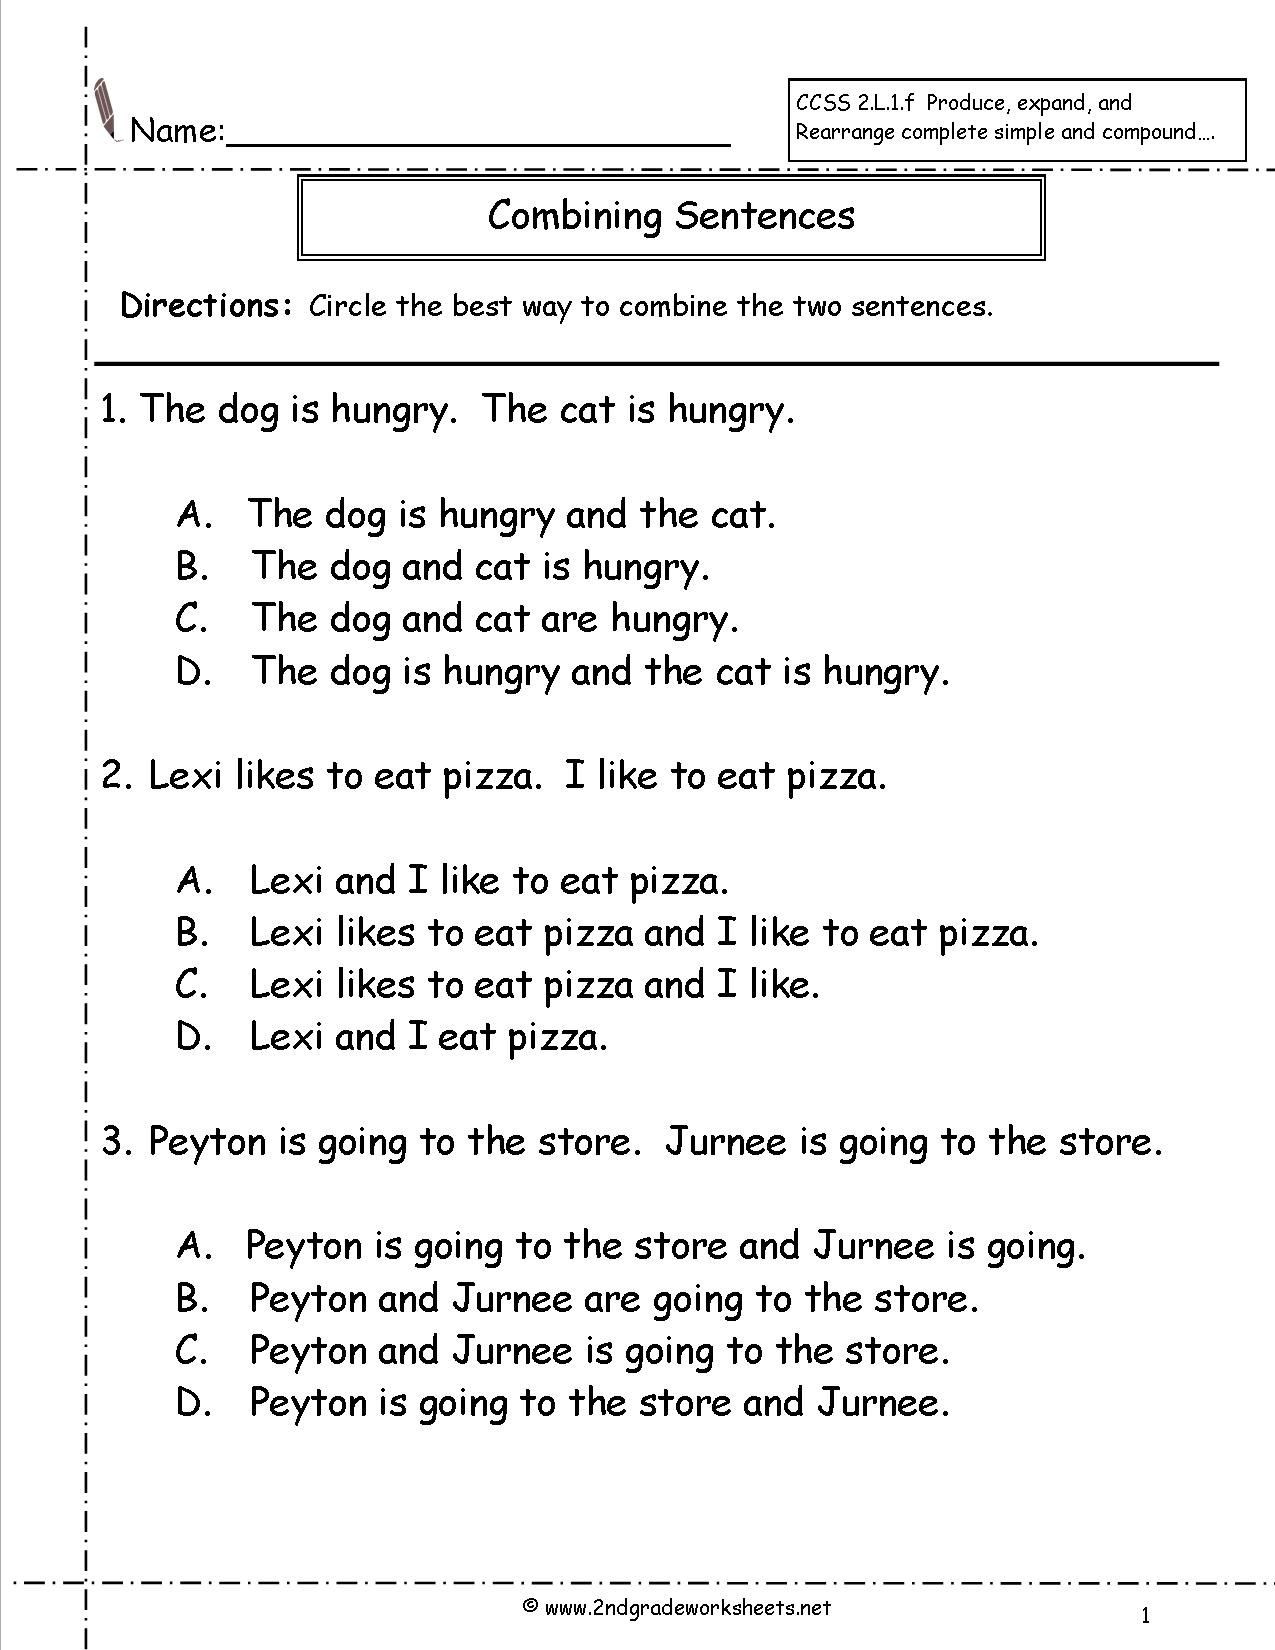 Complex Sentence Worksheets 3rd Grade Bining Sentences Worksheet